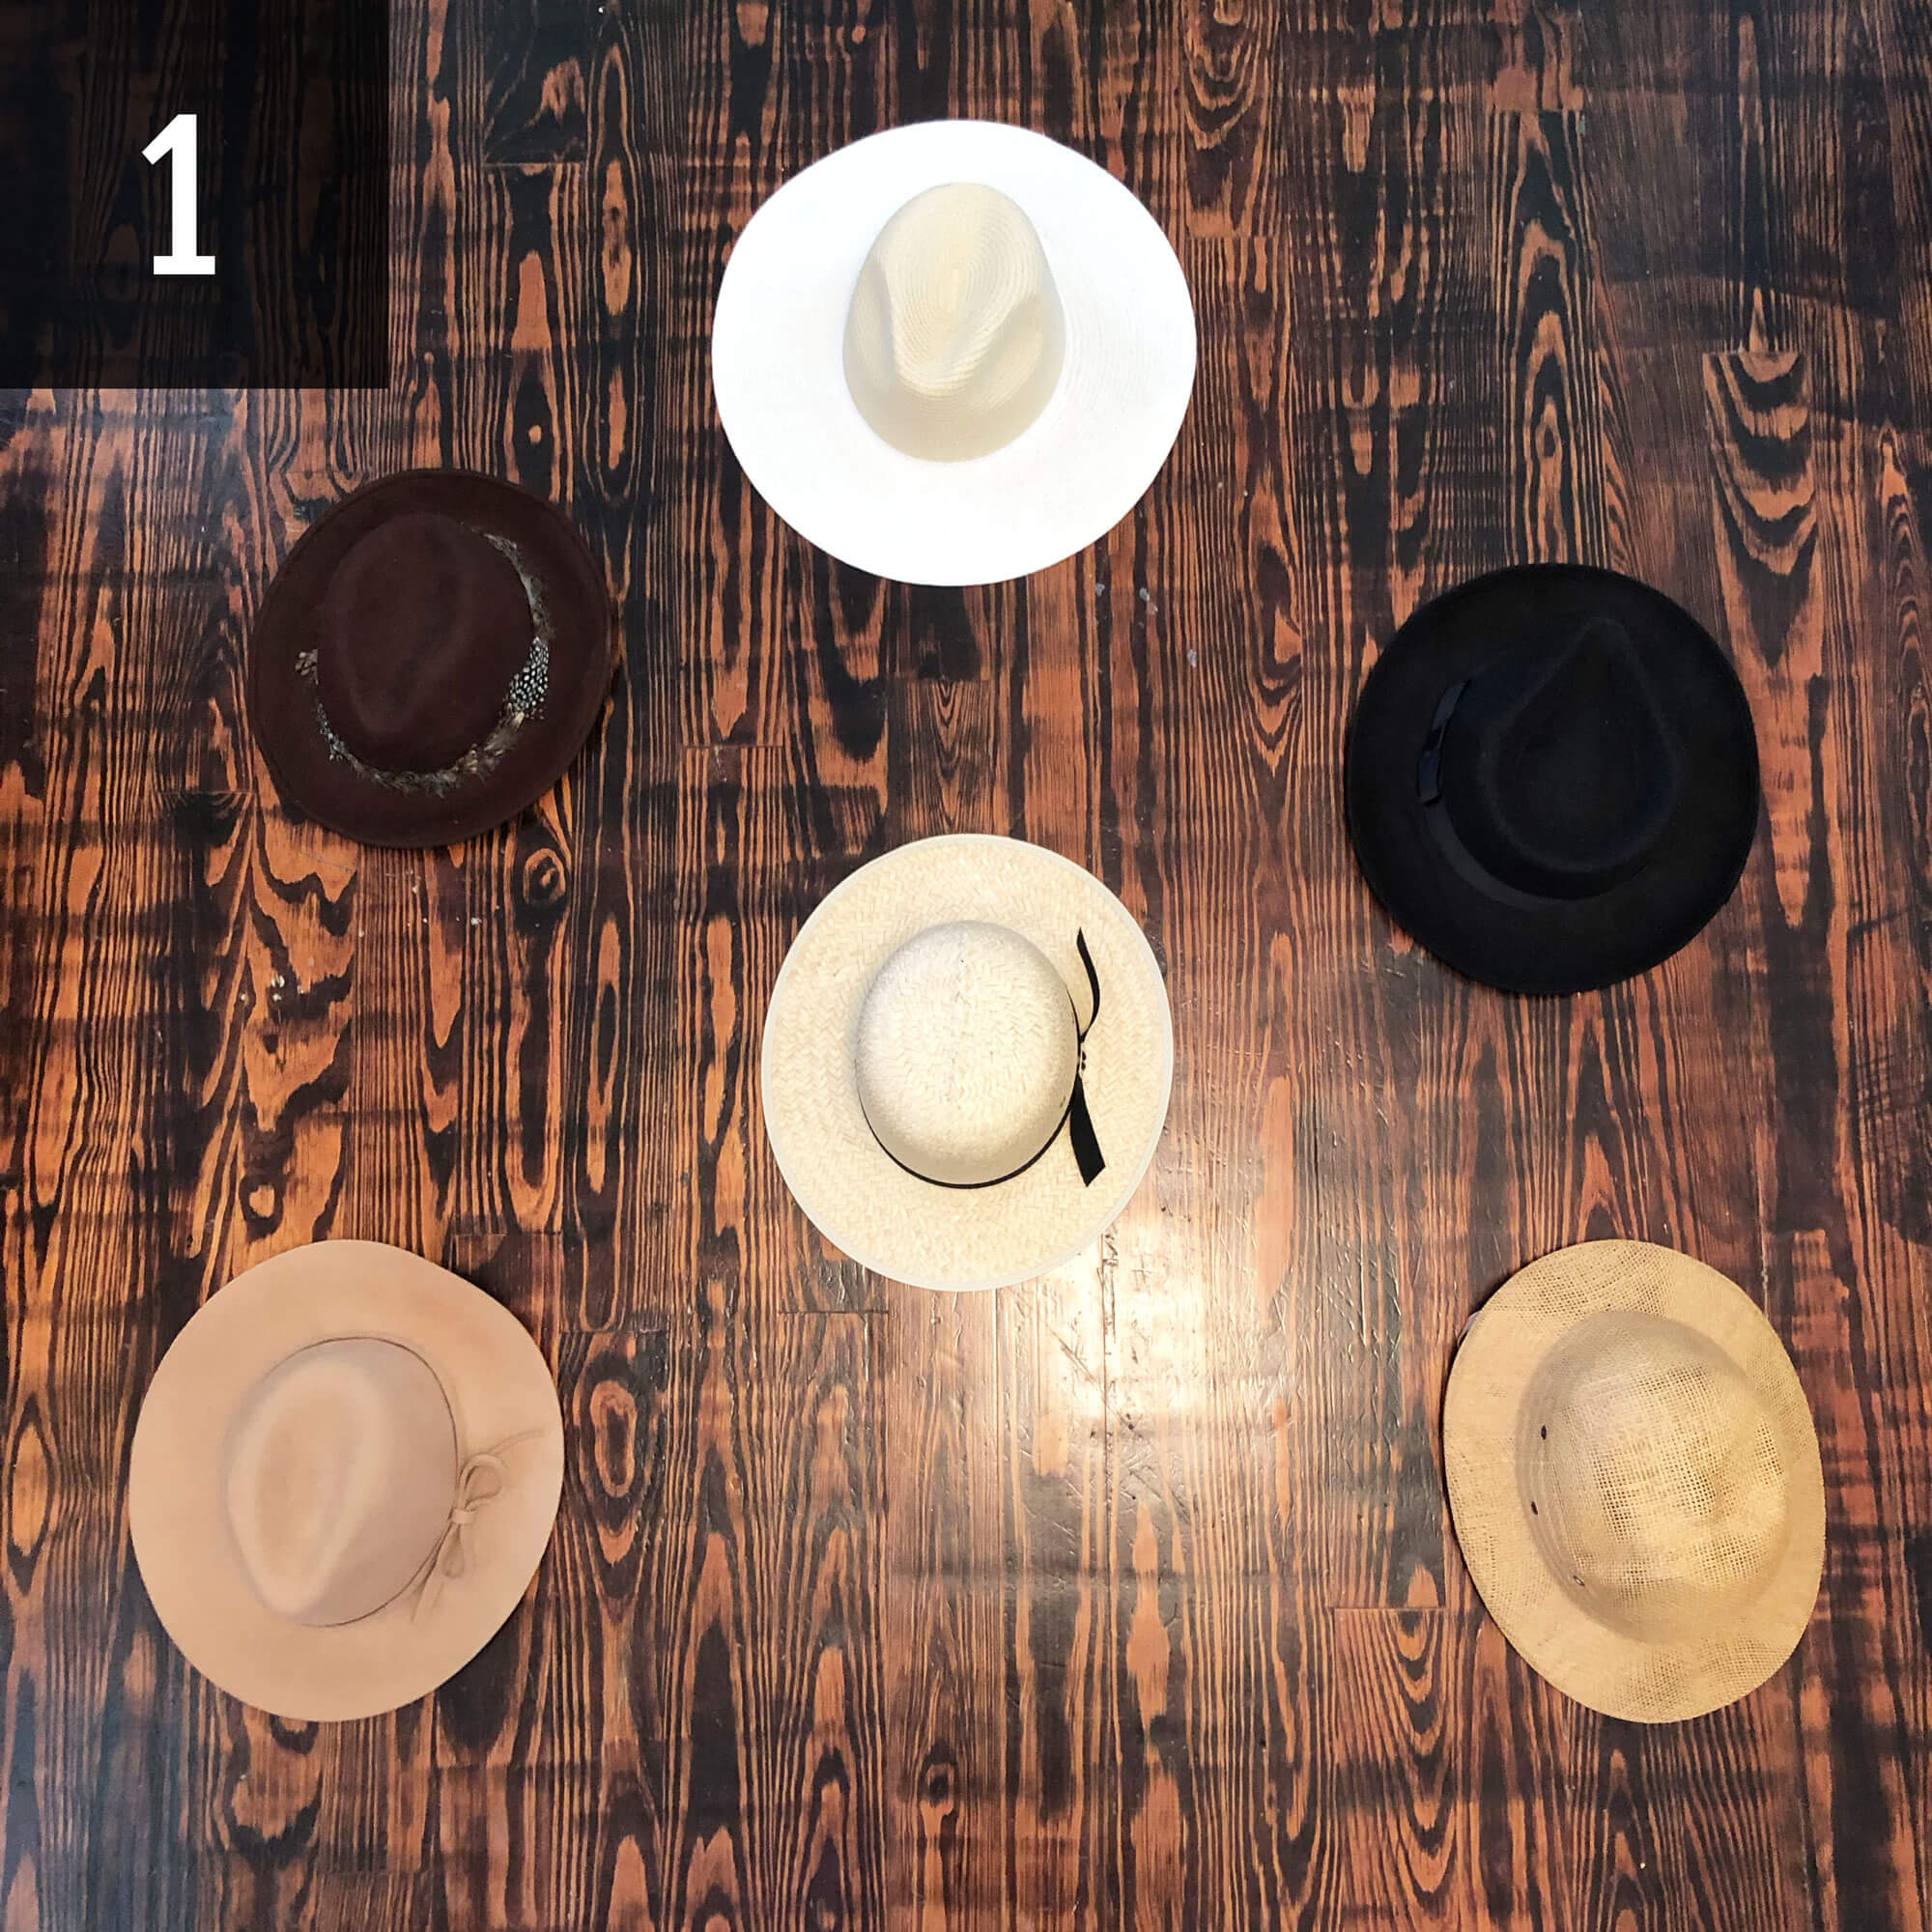 3 Easy Steps To Make A Hat Wall Urban Southern